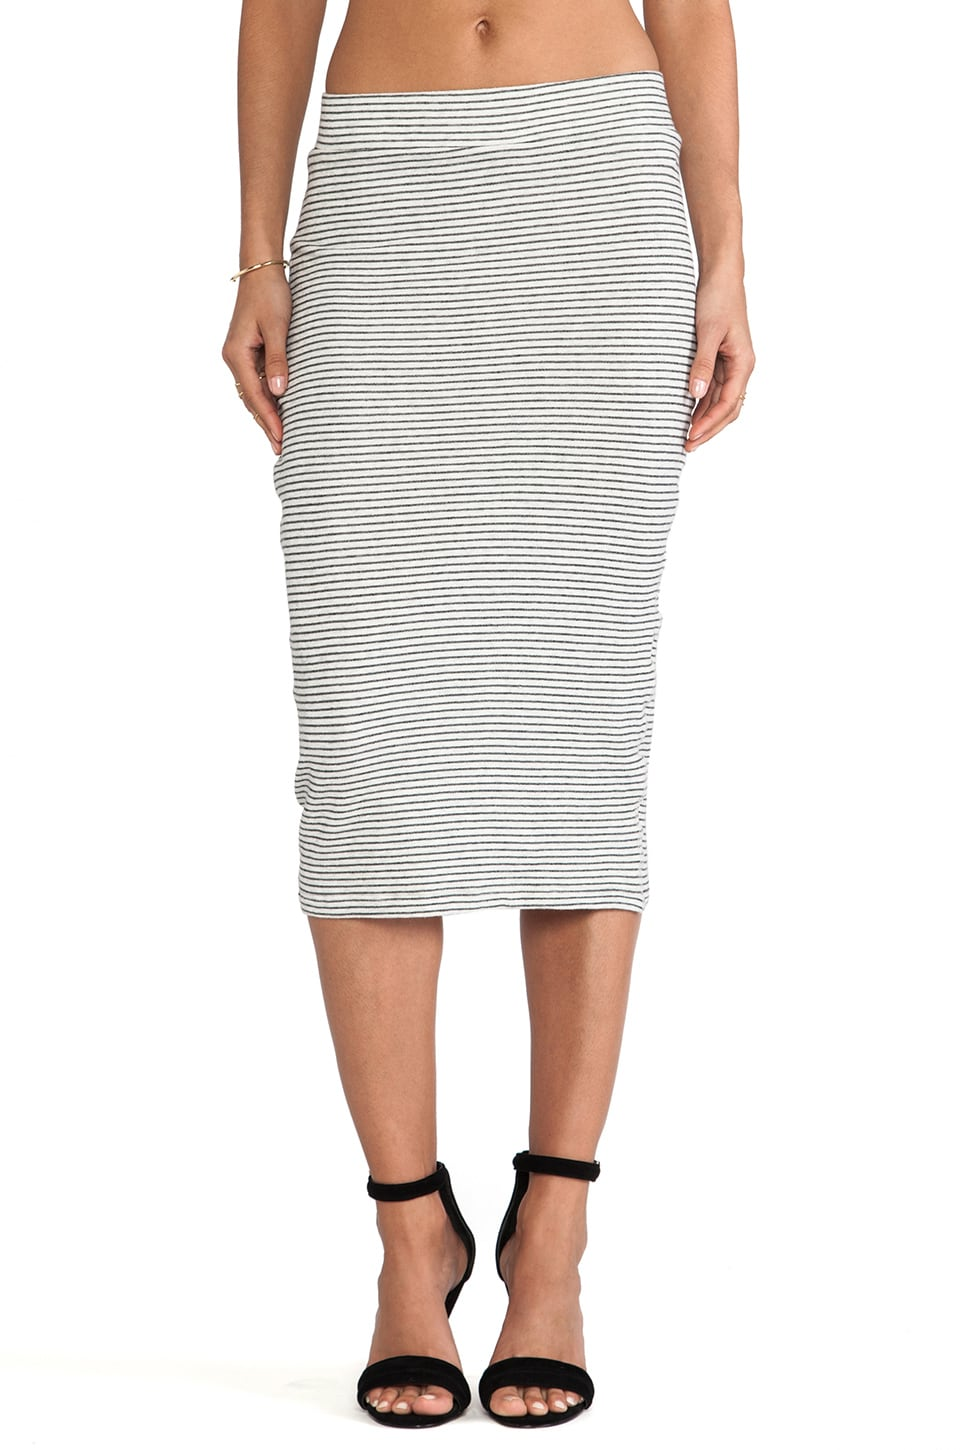 James Perse Stripe Skirt in Heather Grey